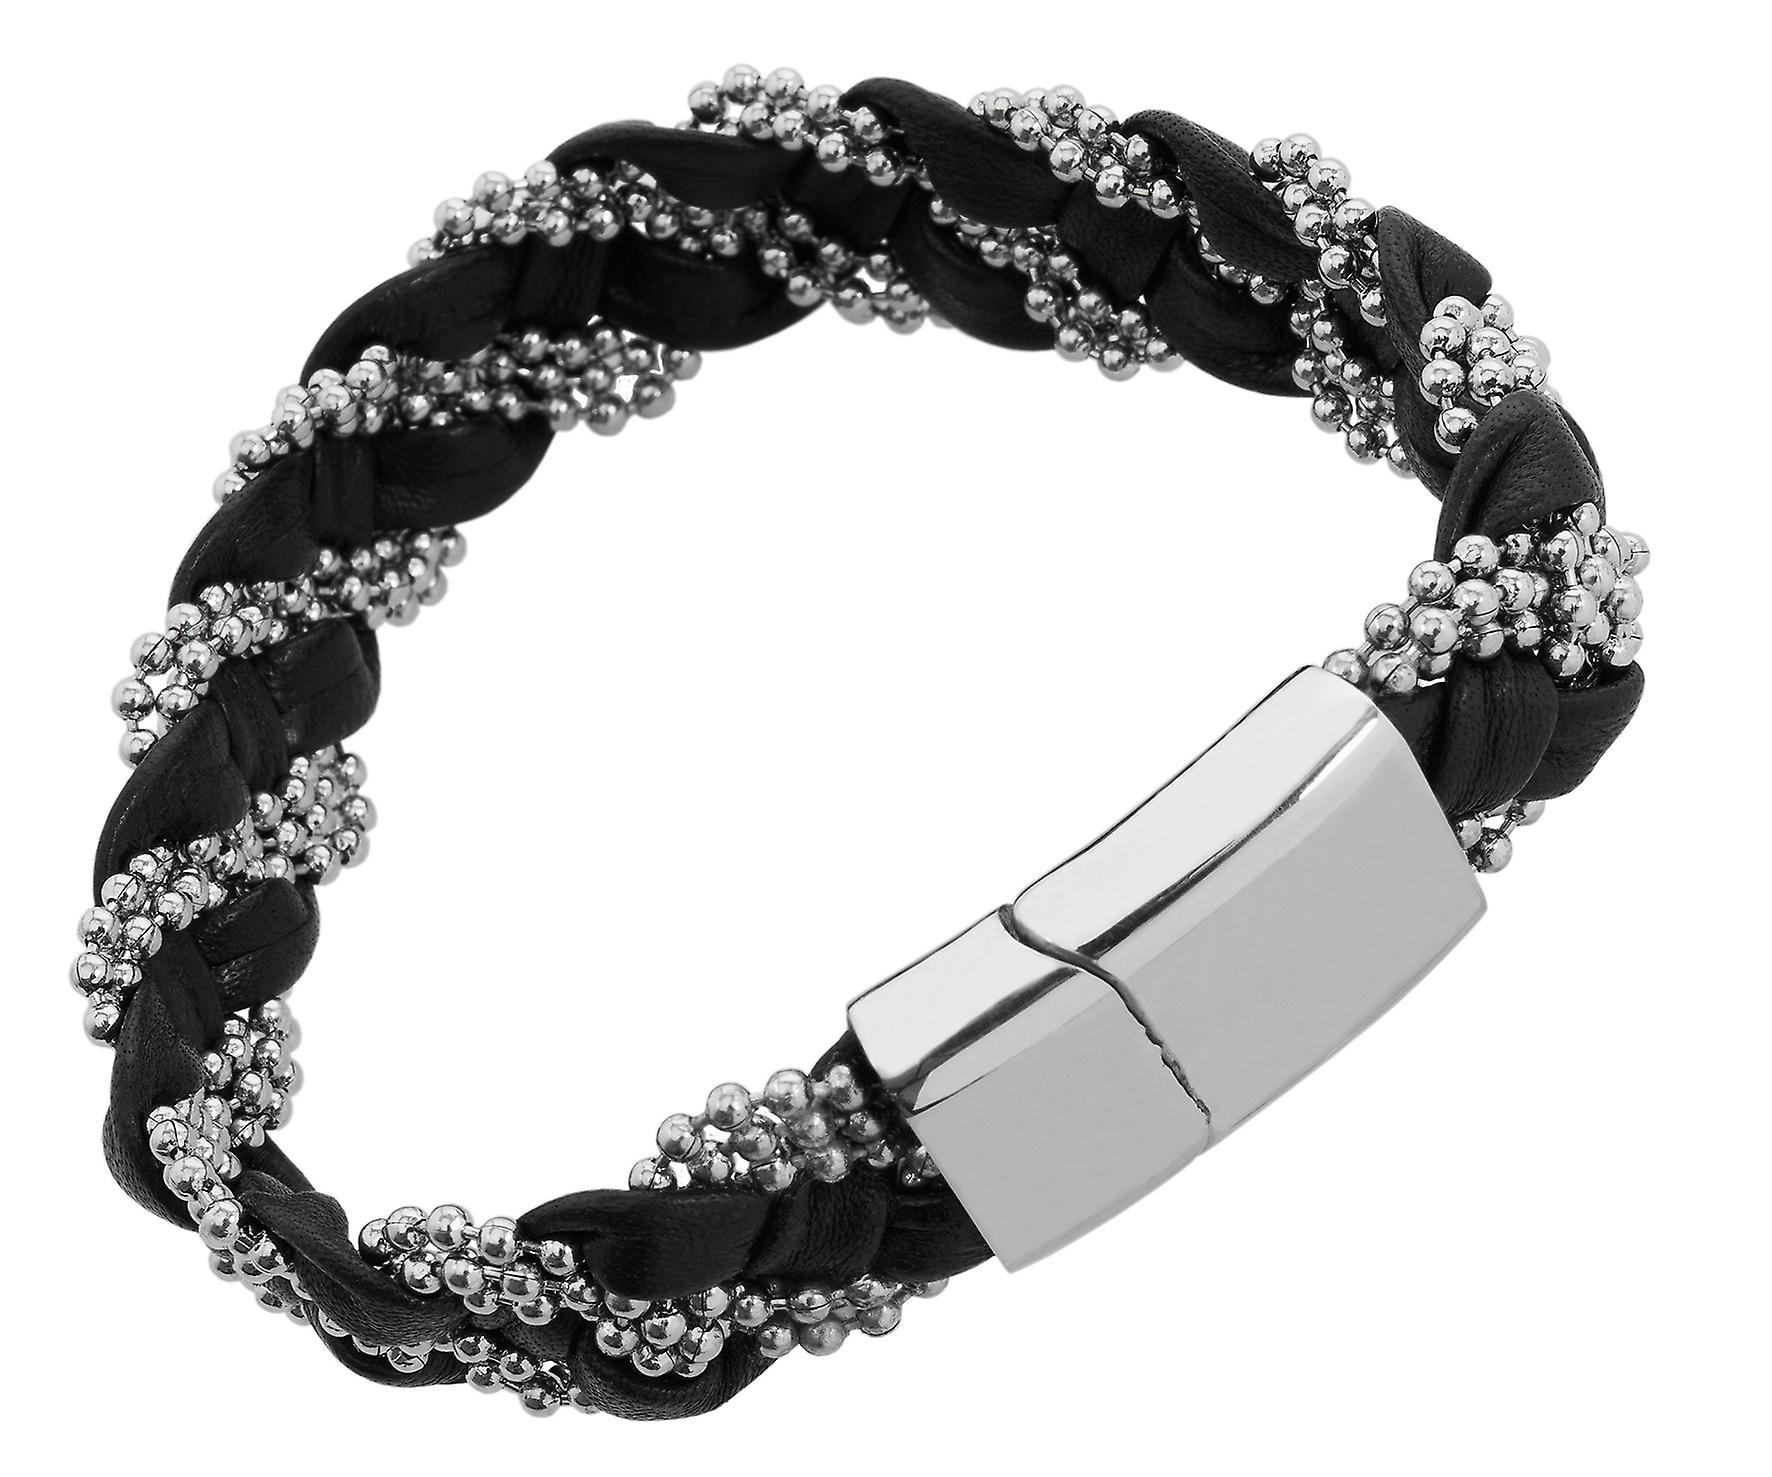 Burgmeister Leather bracelet, JBM4008-755